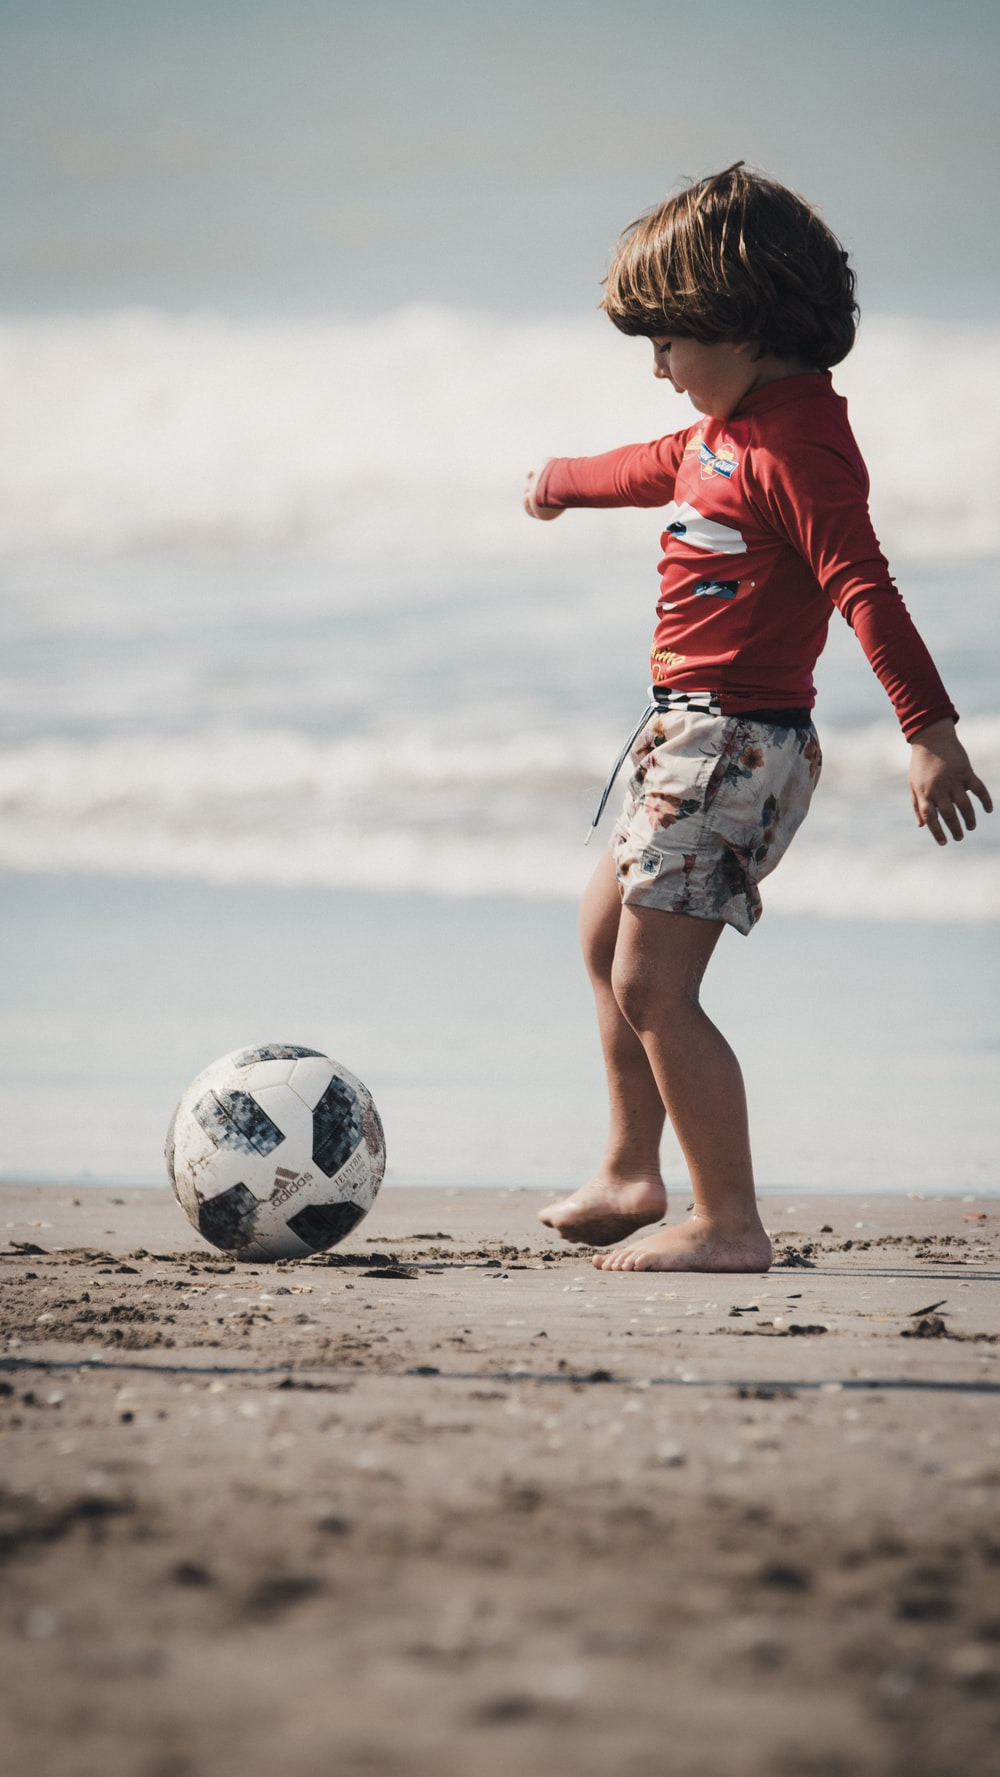 woman in red long sleeve shirt and white skirt holding soccer ball on beach during daytime